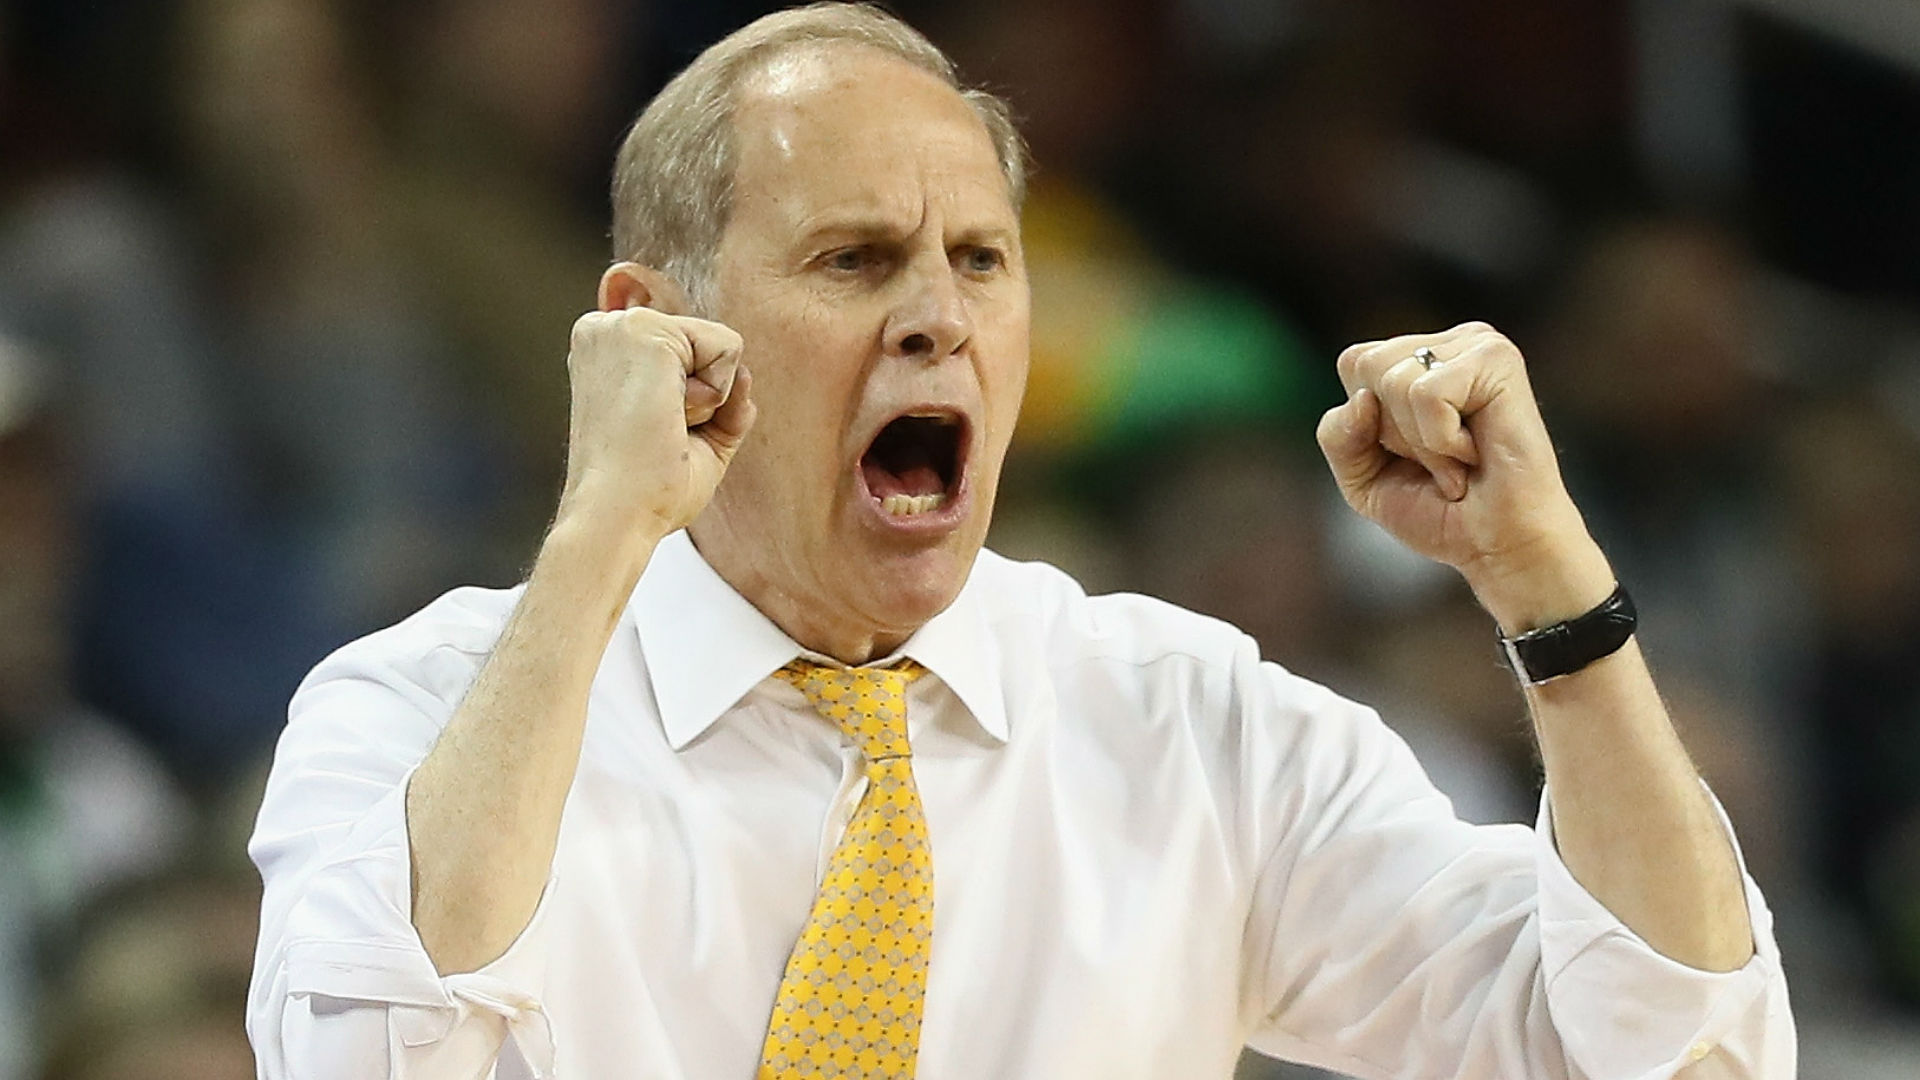 John Beilein, Michigan discussing contract extension, he says